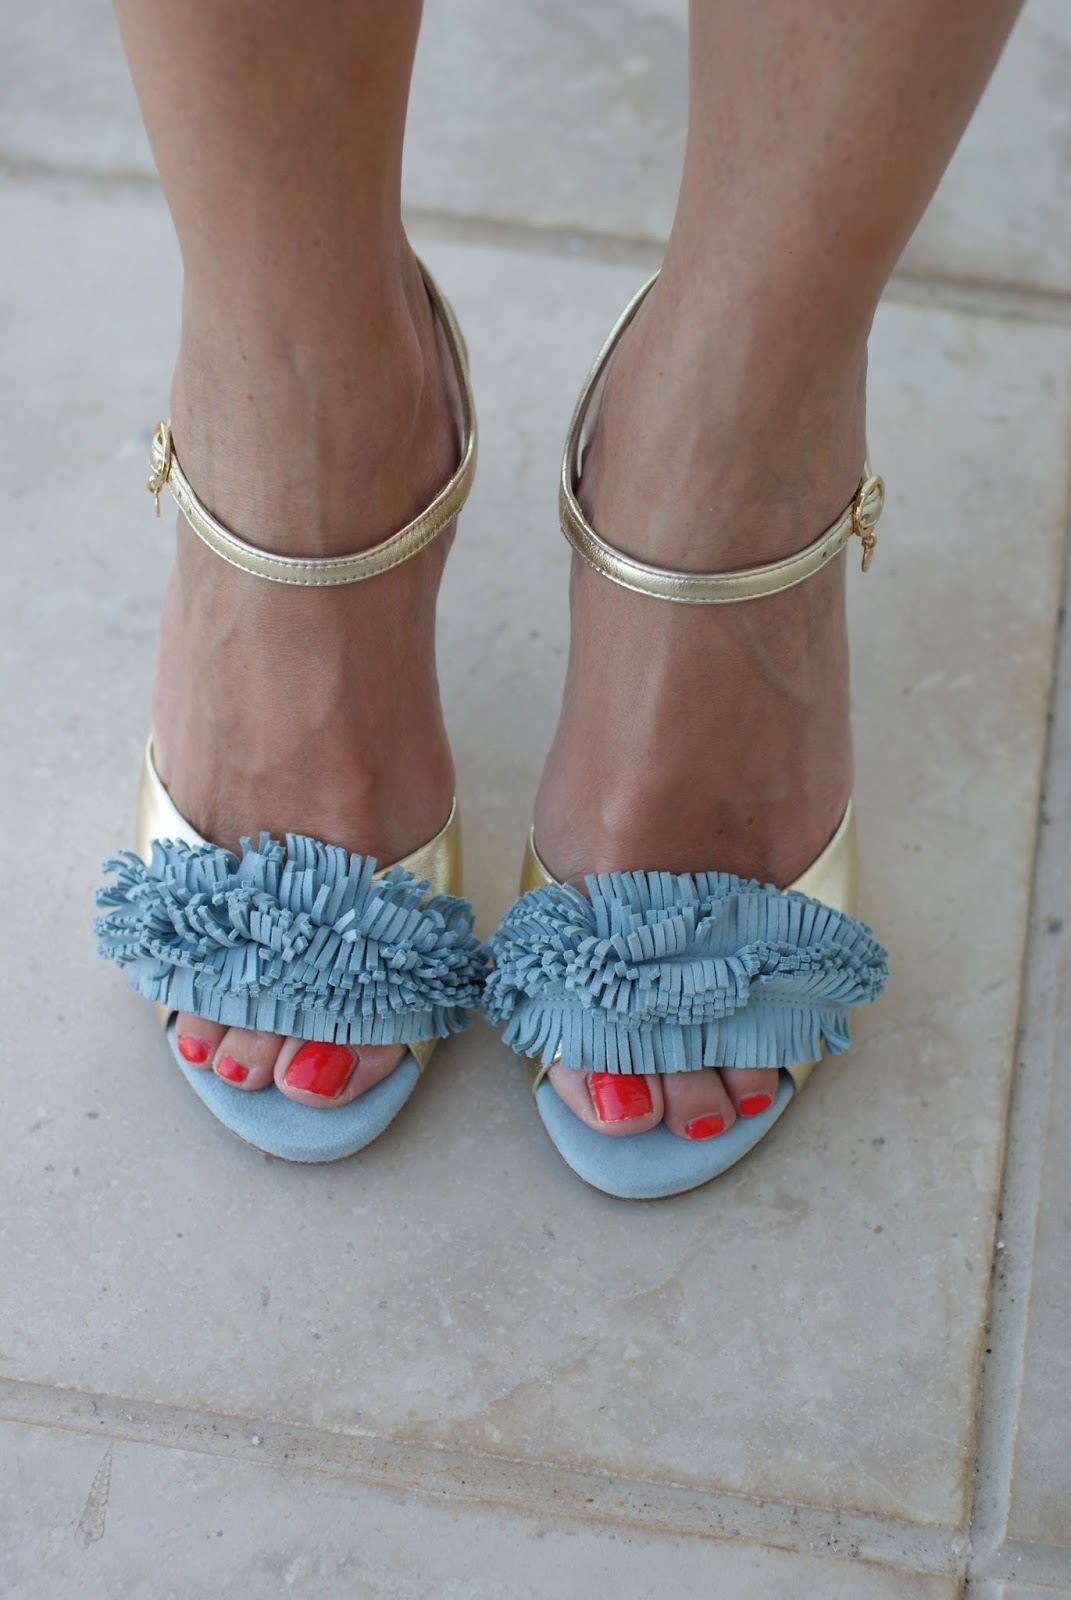 Loriblu sandali con frange, Aquazzura wild thing lookalikes on Fashion and Cookies fashion blog, fashion blogger style